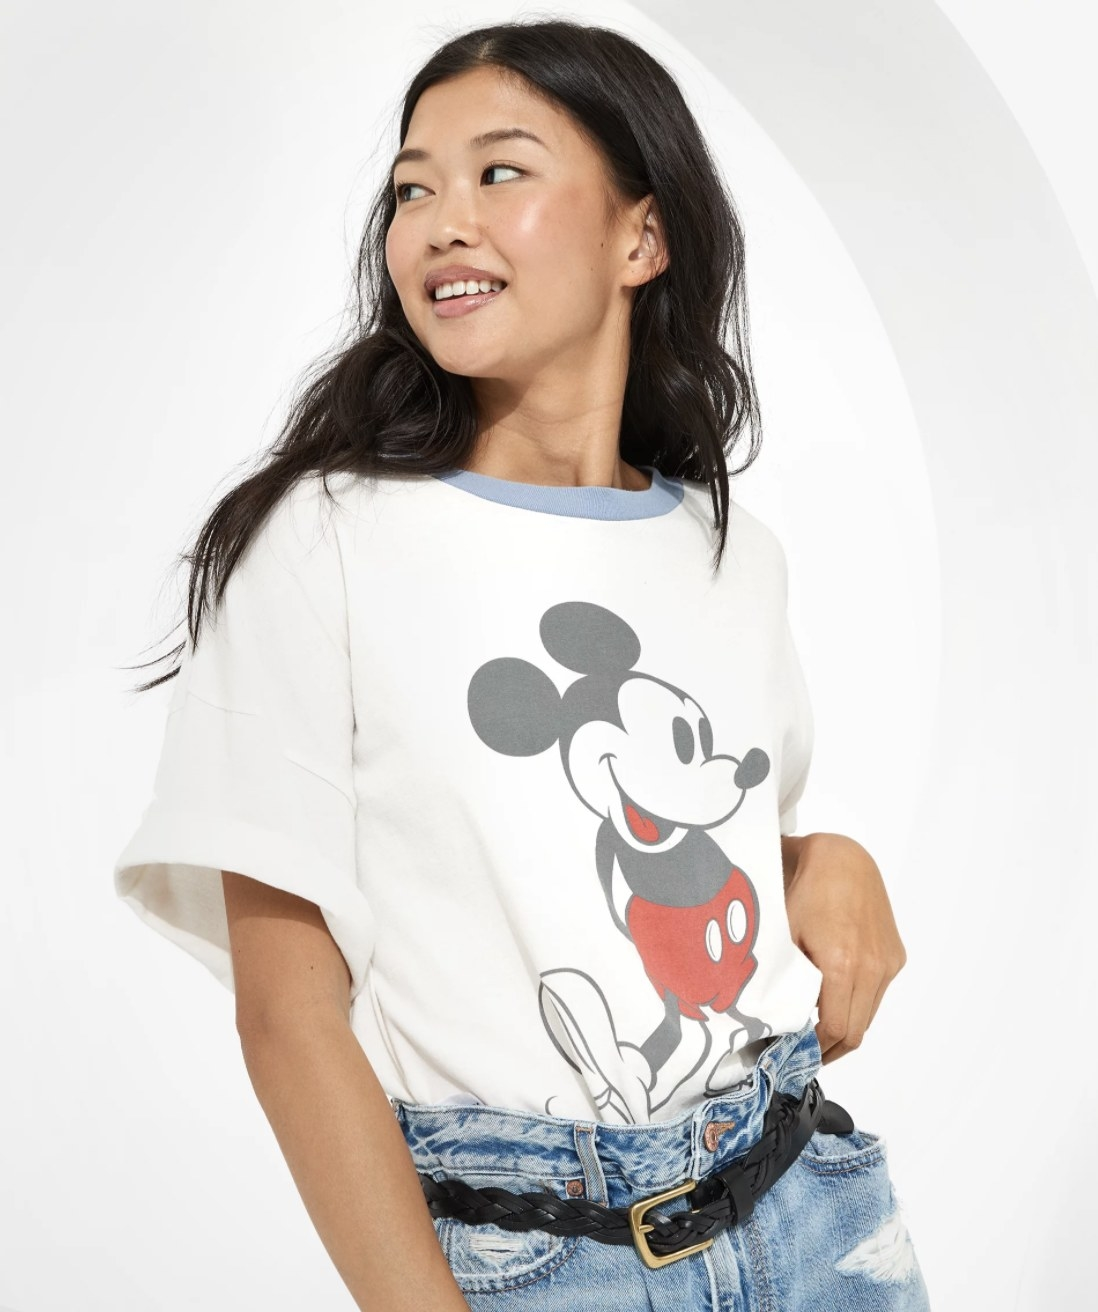 A model wears a white tee with a blue collar and a photo of Mickey Mouse